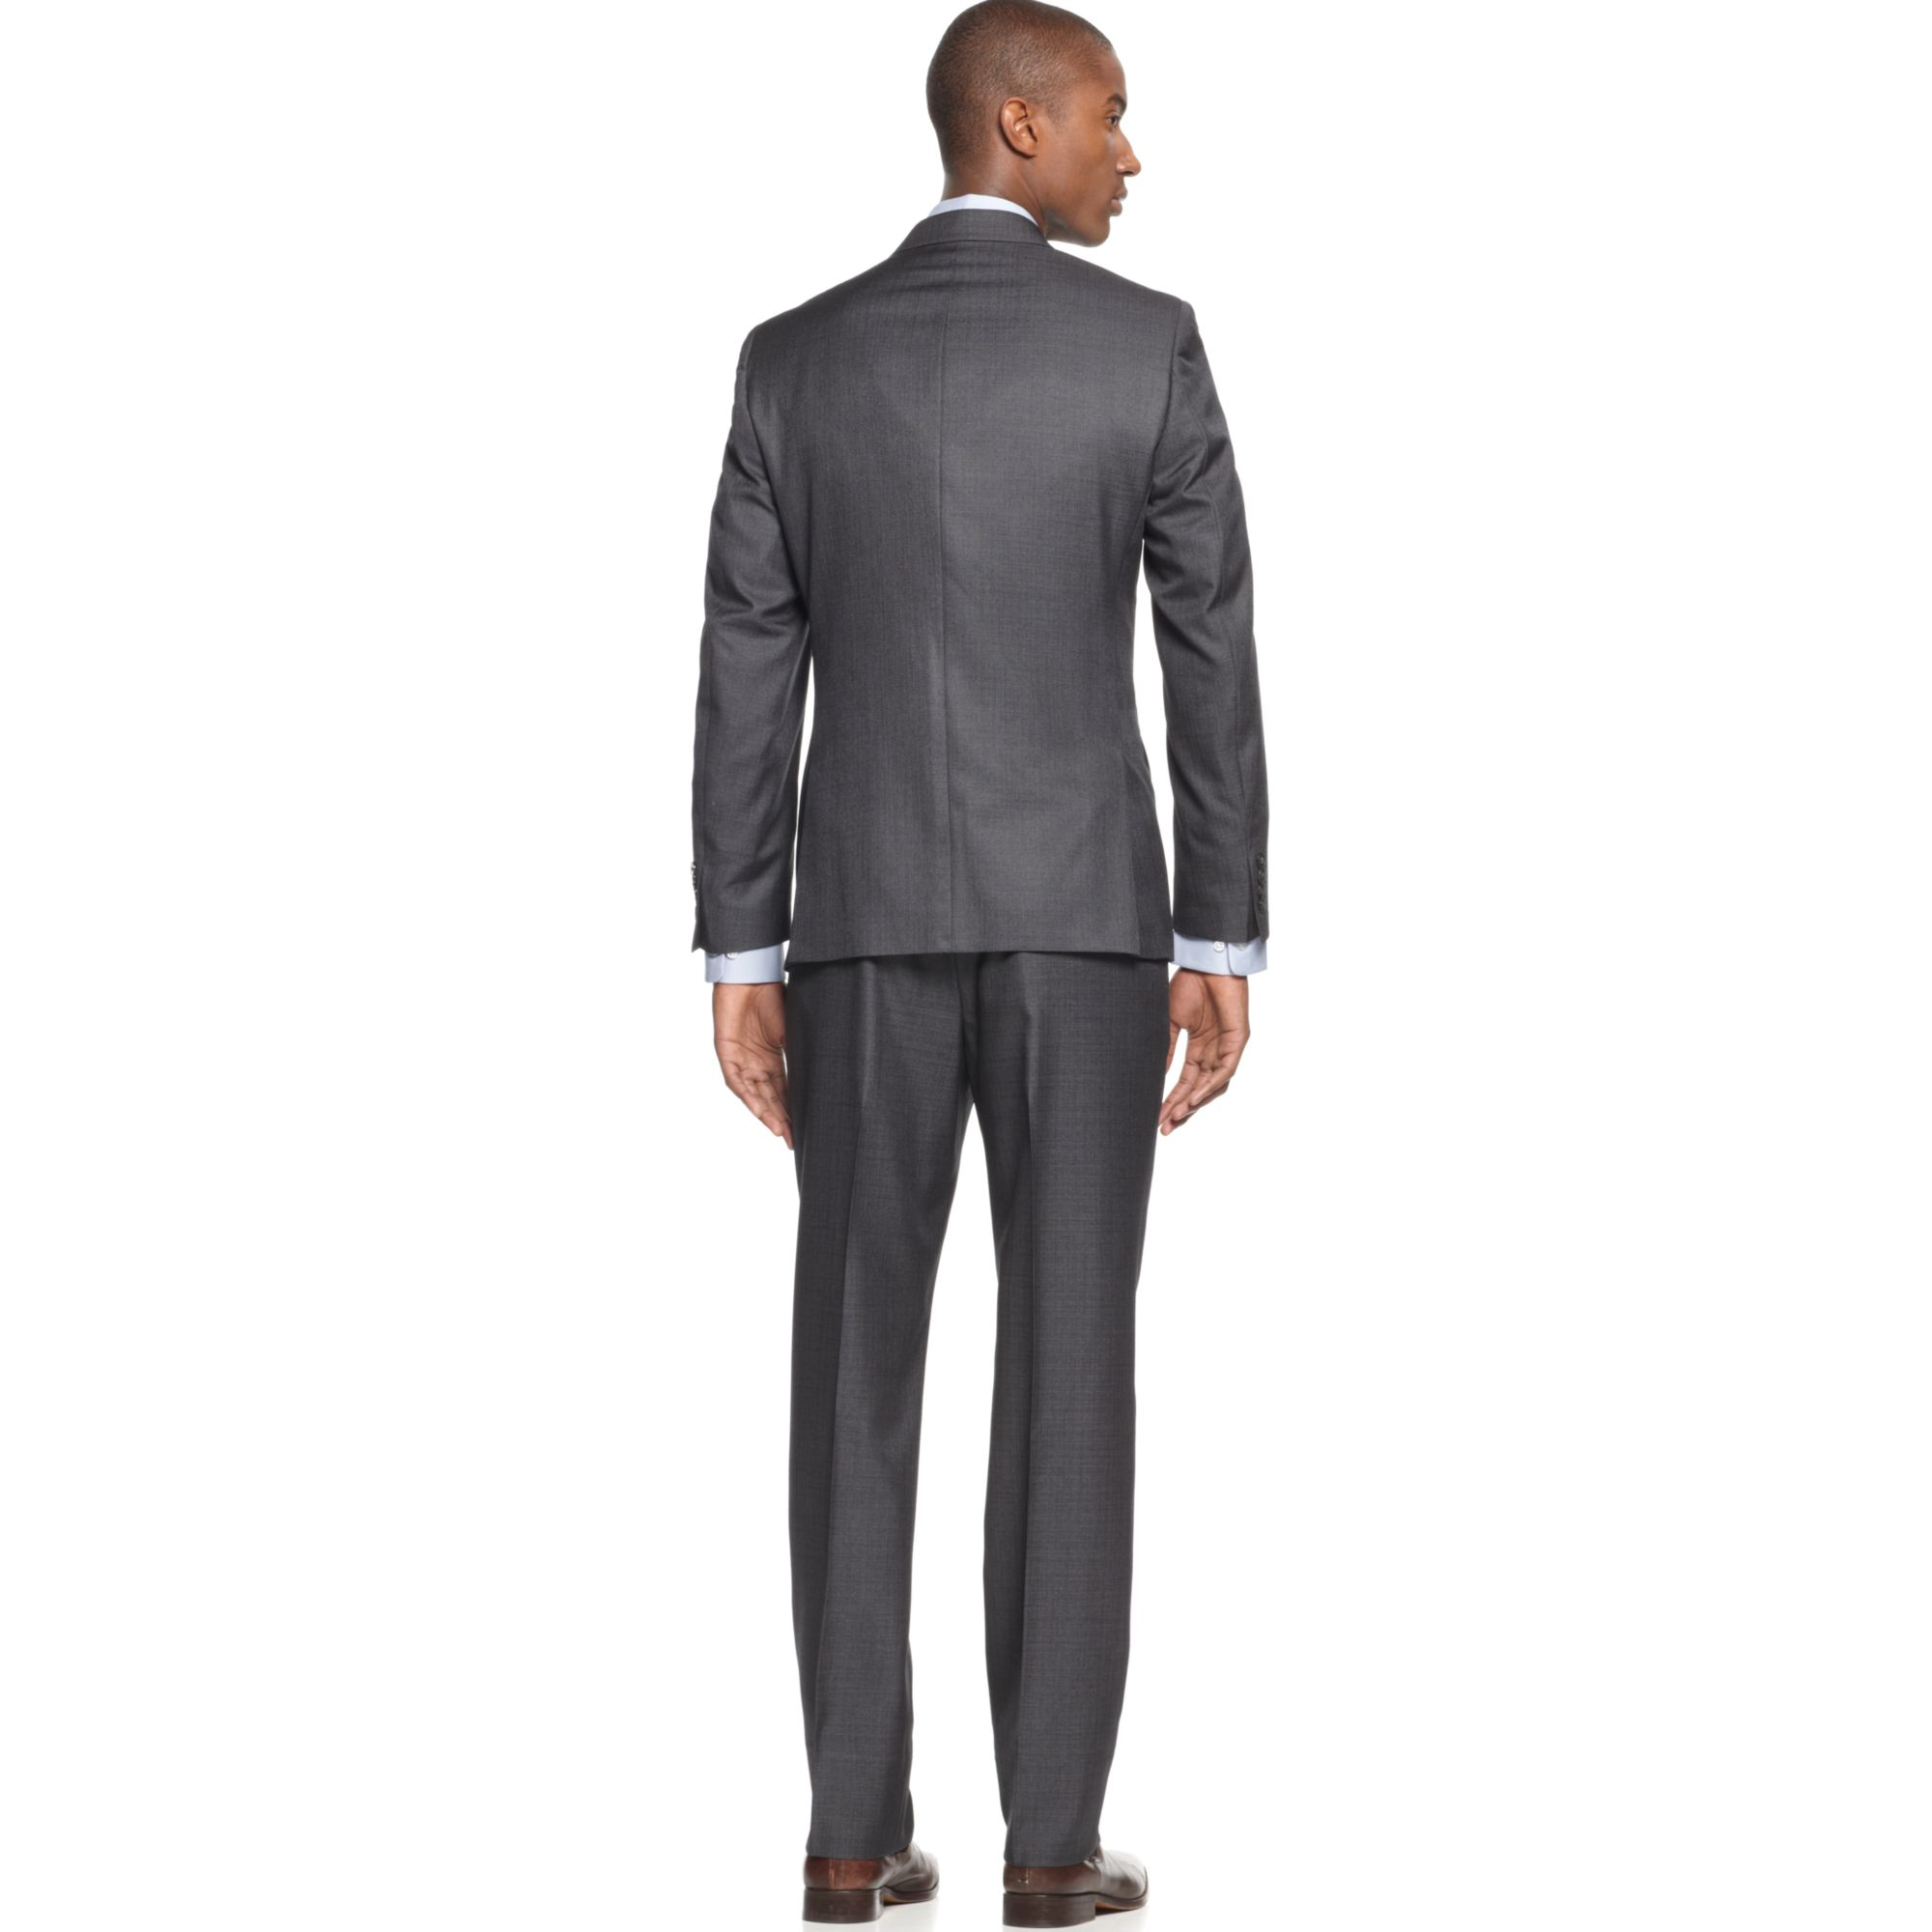 Check out all of the chic options in our big and tall clothing collections. Discover activewear, belts, blazers, coats, suits and shirts and everything else guys need to fill a stylish wardrobe. Calvin Klein Men's STEEL Big & Tall Slim-Fit Non-Iron Performance Stretch Unsolid Solid Dress Shirt.